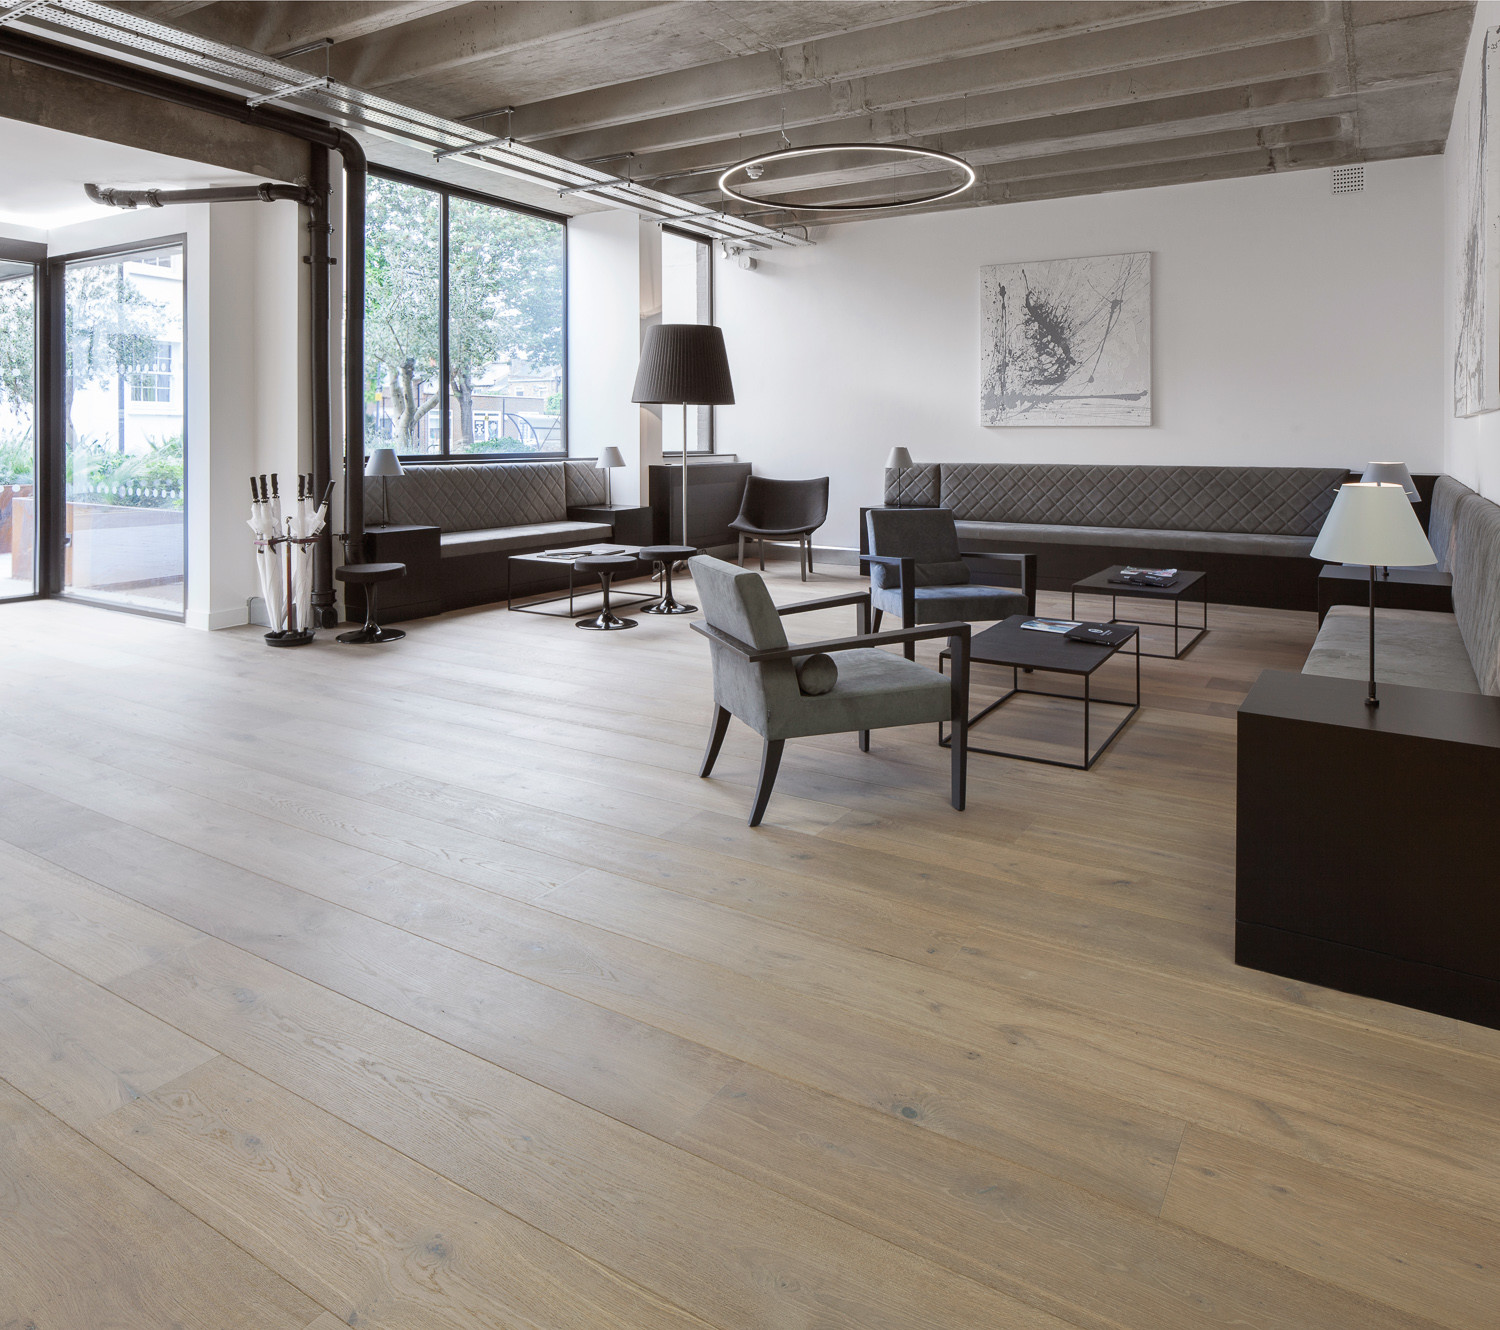 bruce maple cherry hardwood flooring of blog archives the new reclaimed flooring companythe new for the report indicated that 82 of workers who were employed in places with eight or more wood surfaces had higher personal productivity mood concentration